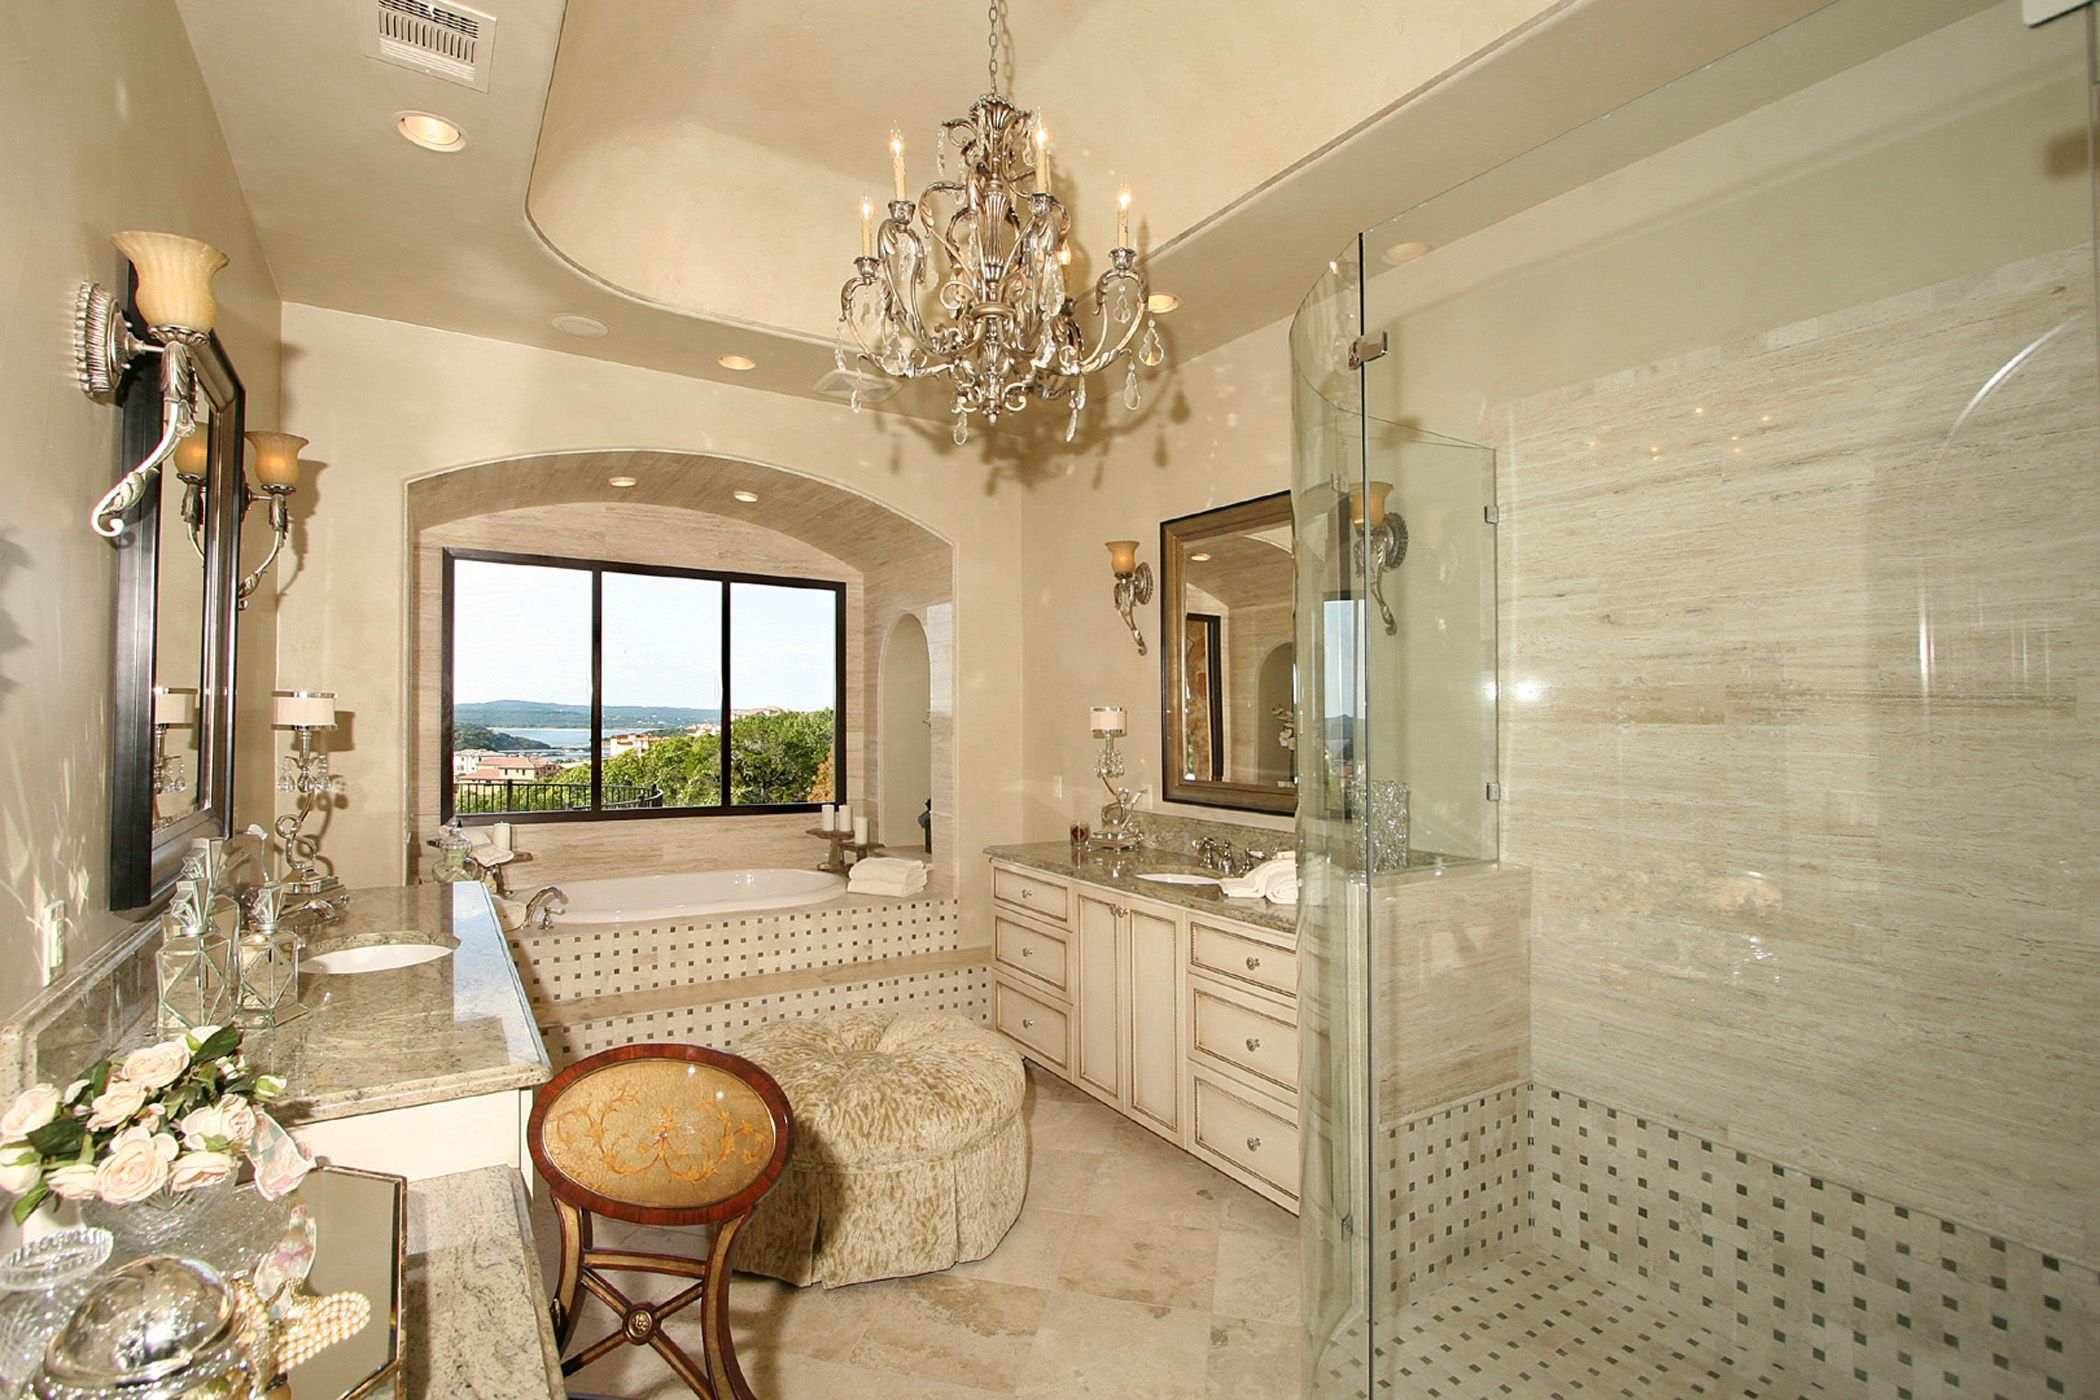 Rough Hollow Lakeway Master Bath Elegance With View By Zbranek Holt Custom Homes Lakeway And